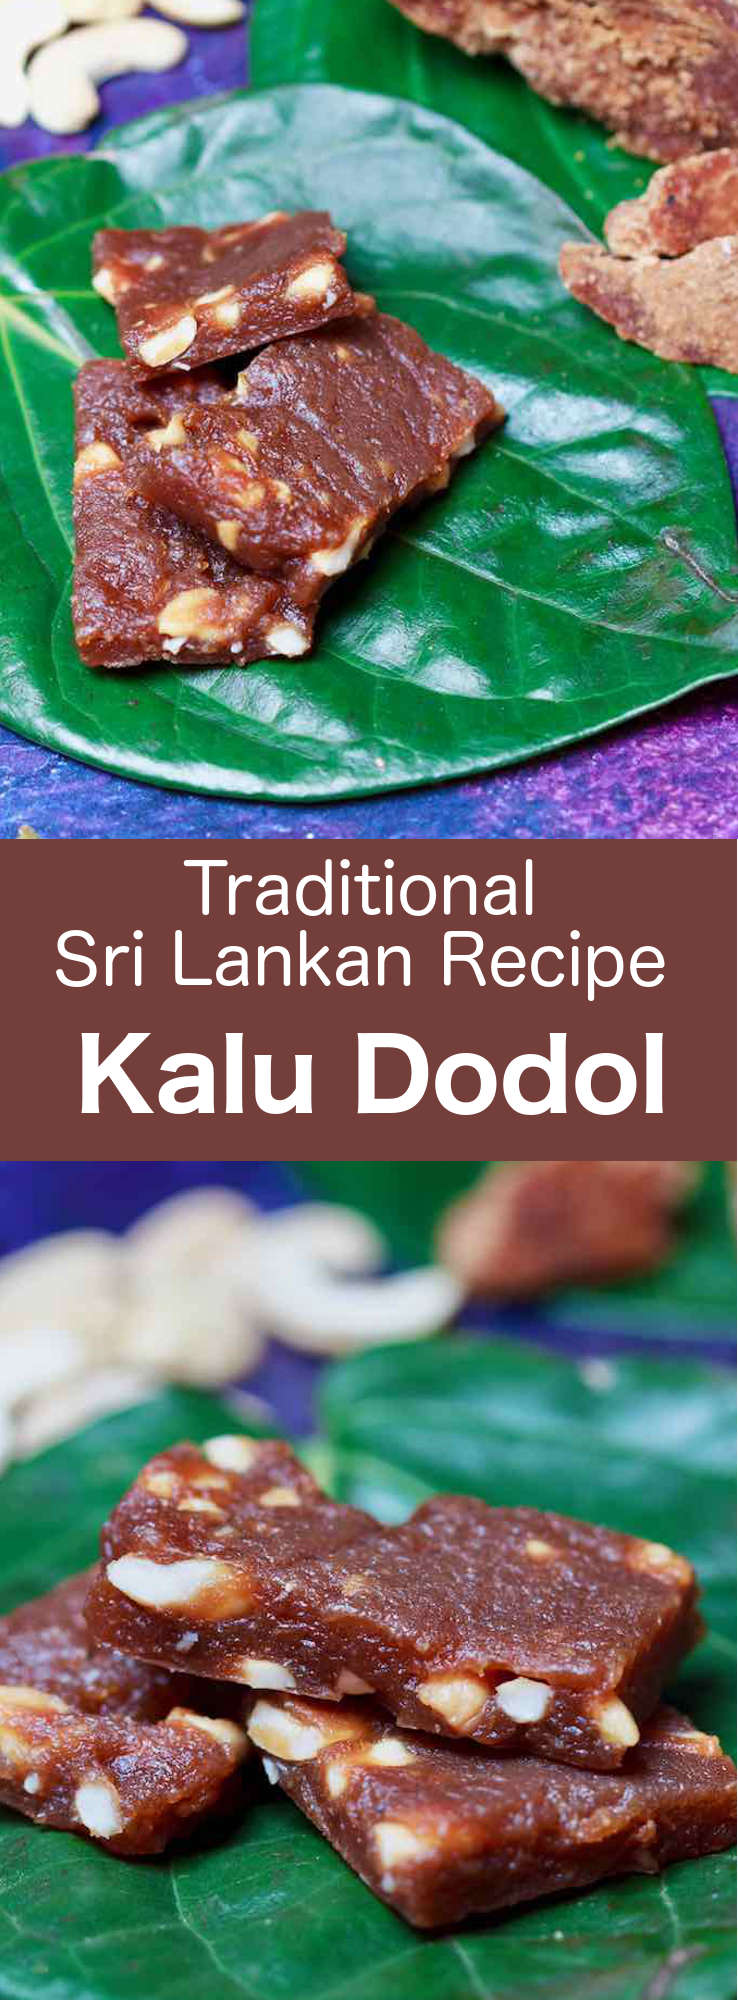 Kalu dodol is a dark, almost gel-like candy, made from jaggery, coconut milk, and rice flour, which is said to have been brought to Sri Lanka by immigrants from Malaysia. #SriLanka #SriLankanCuisine #SriLankanDessert #Dessert #DessertRecipe #SriLankanRecipe #WorldCuisine #196flavors